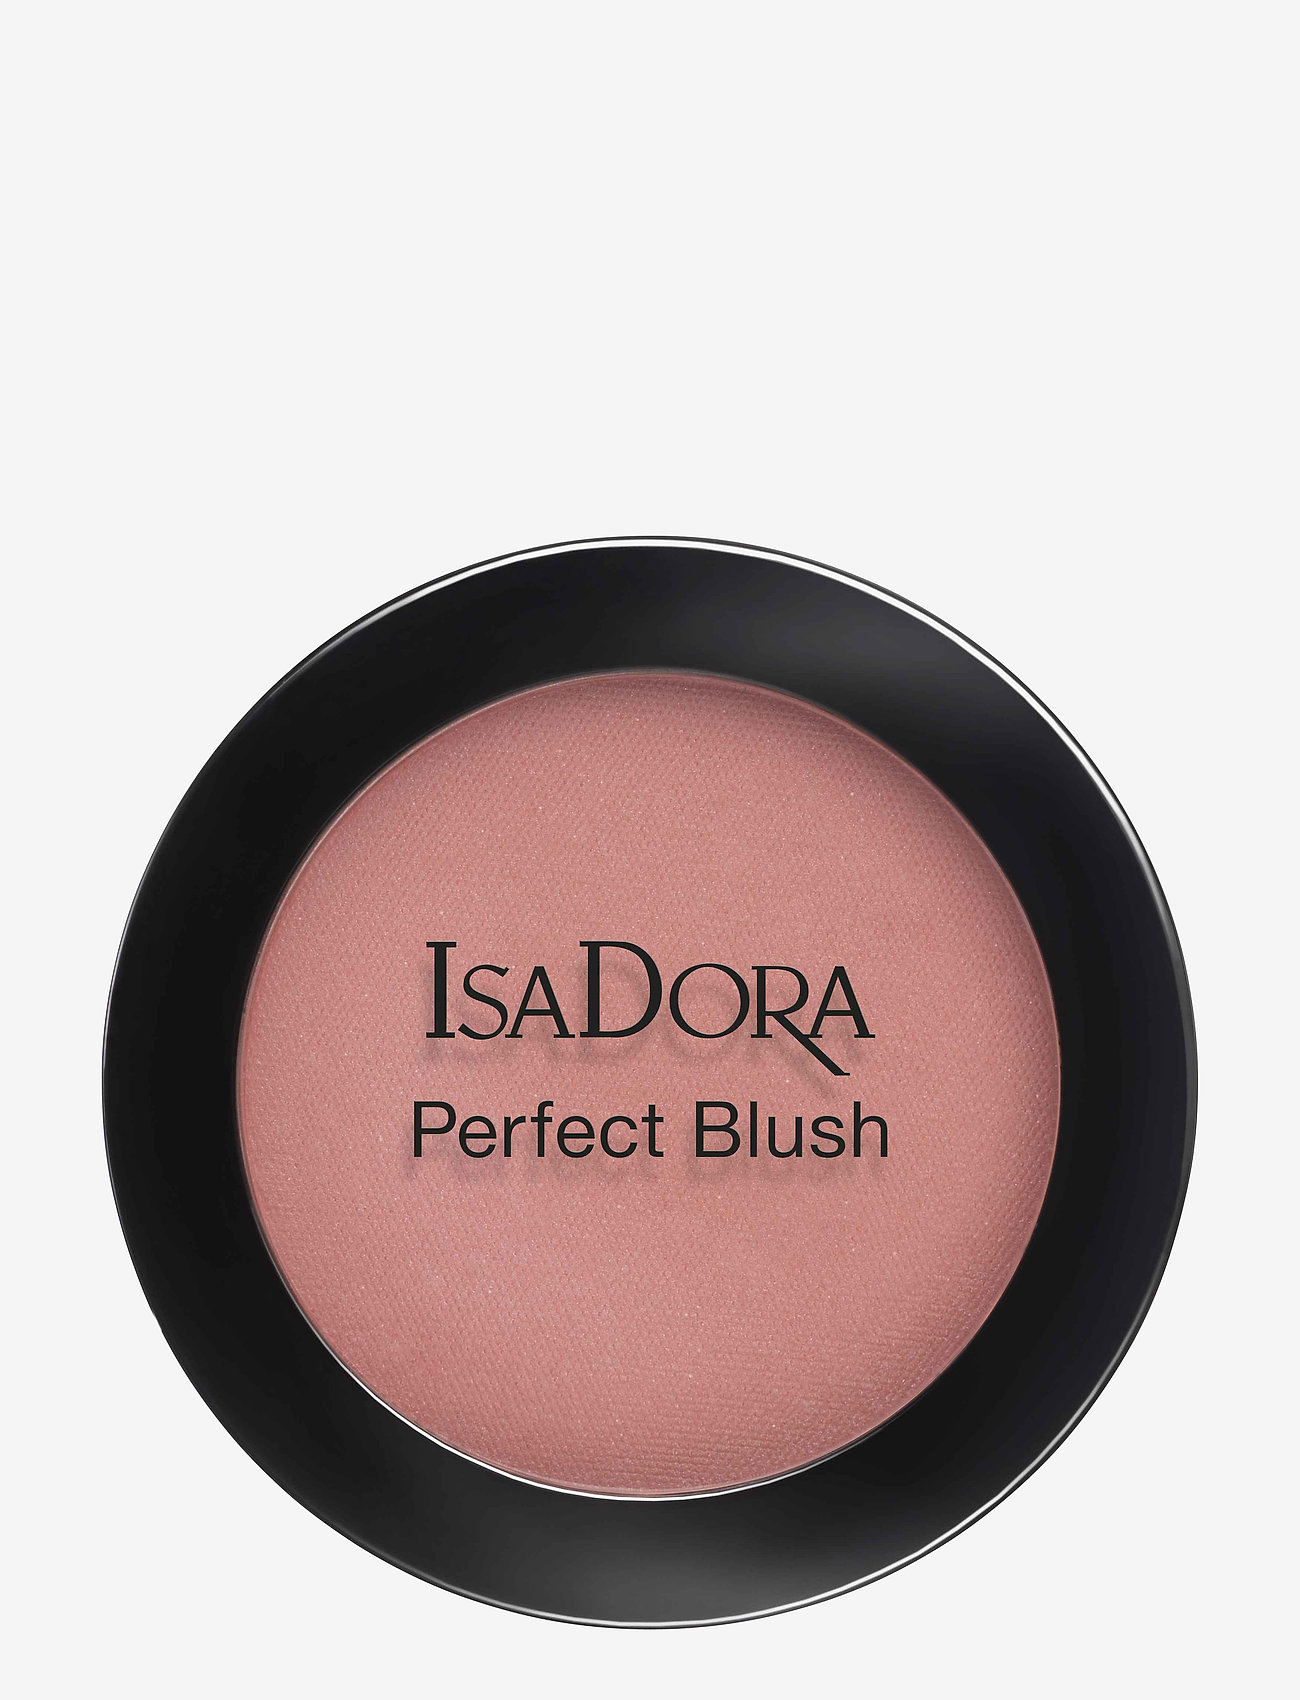 Isadora - PERFECT BLUSH - 062 dusty rose - 0